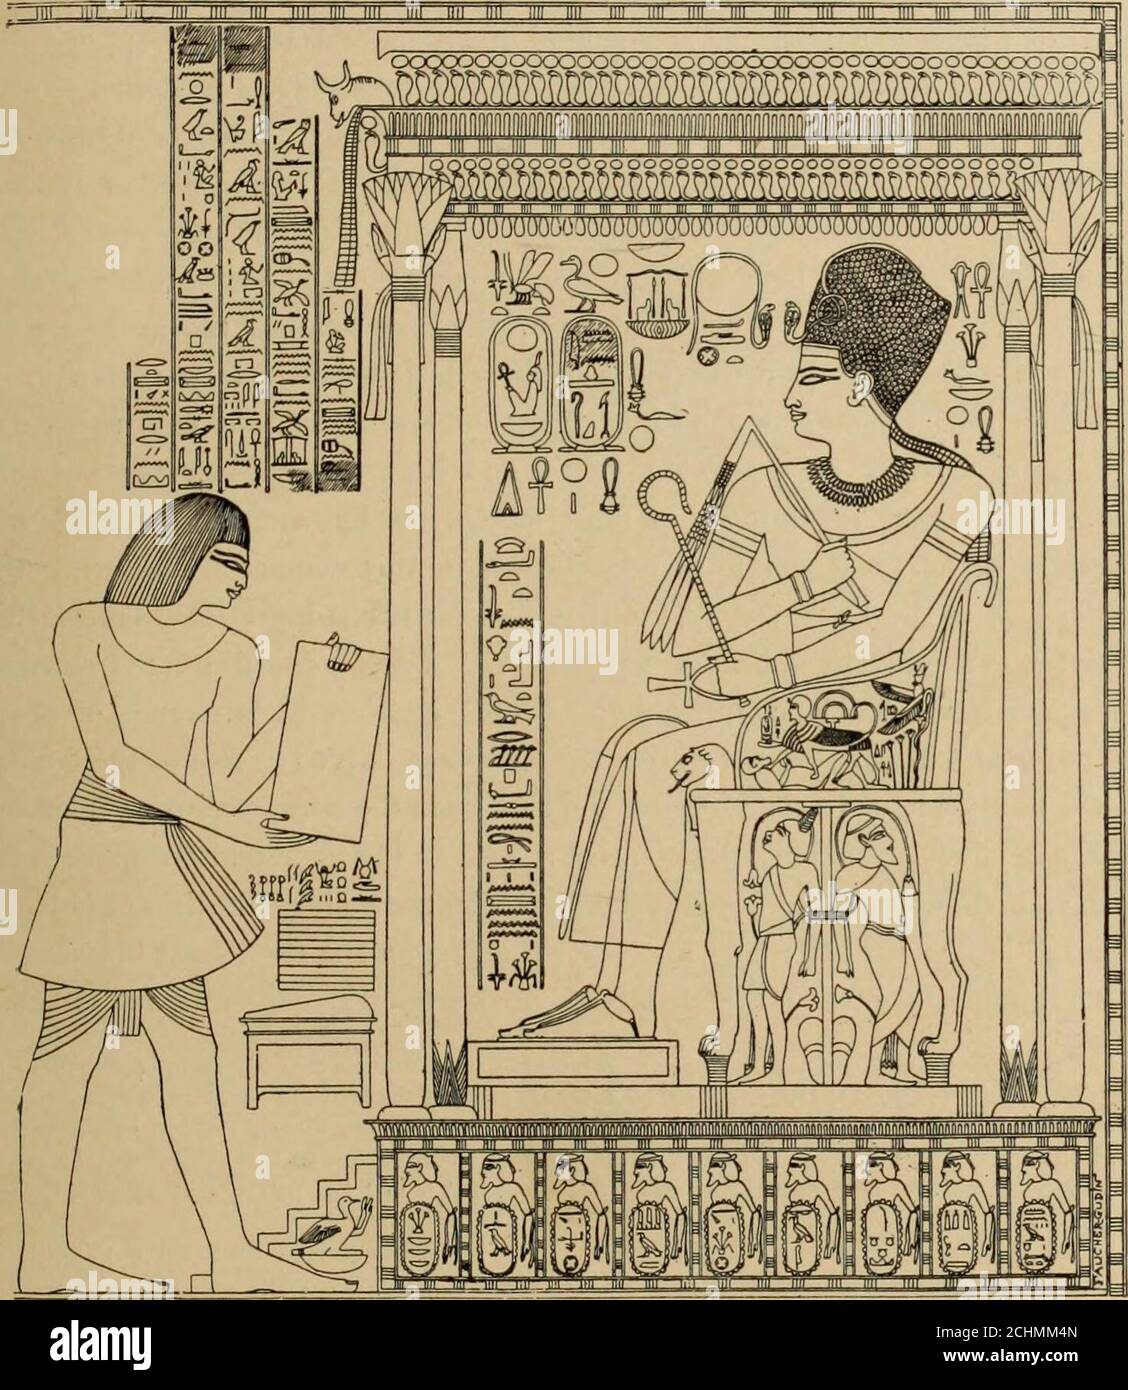 . The dawn of civilization: Egypt and Chaldaea . clown to us, is mentioned by Ûni ;this is Queen Amîtsi, wife of Mirirî-Papi I. of the VIth dynasty (E. de Rouge, Becherches sur lesmonuments, p. 121; cf. Erman, Commentar zur Inschrift des Una, in the Zeitschrift, 1881, pp. 10, 11). 5 It would seem that Queen Mirisônkhû (Mariette, Les Mastabas, p. 183 ; Lepsius, Denhm., ii.14, 26), wife of Khephren, was the daughter of Kheops, and consequently her husbands sister (E. deRouge, Becherches sur les monuments quon peut attribuer aux six premières dynasties de Manéthon,pp. 61, 62). 6 The preamble of t Stock Photo